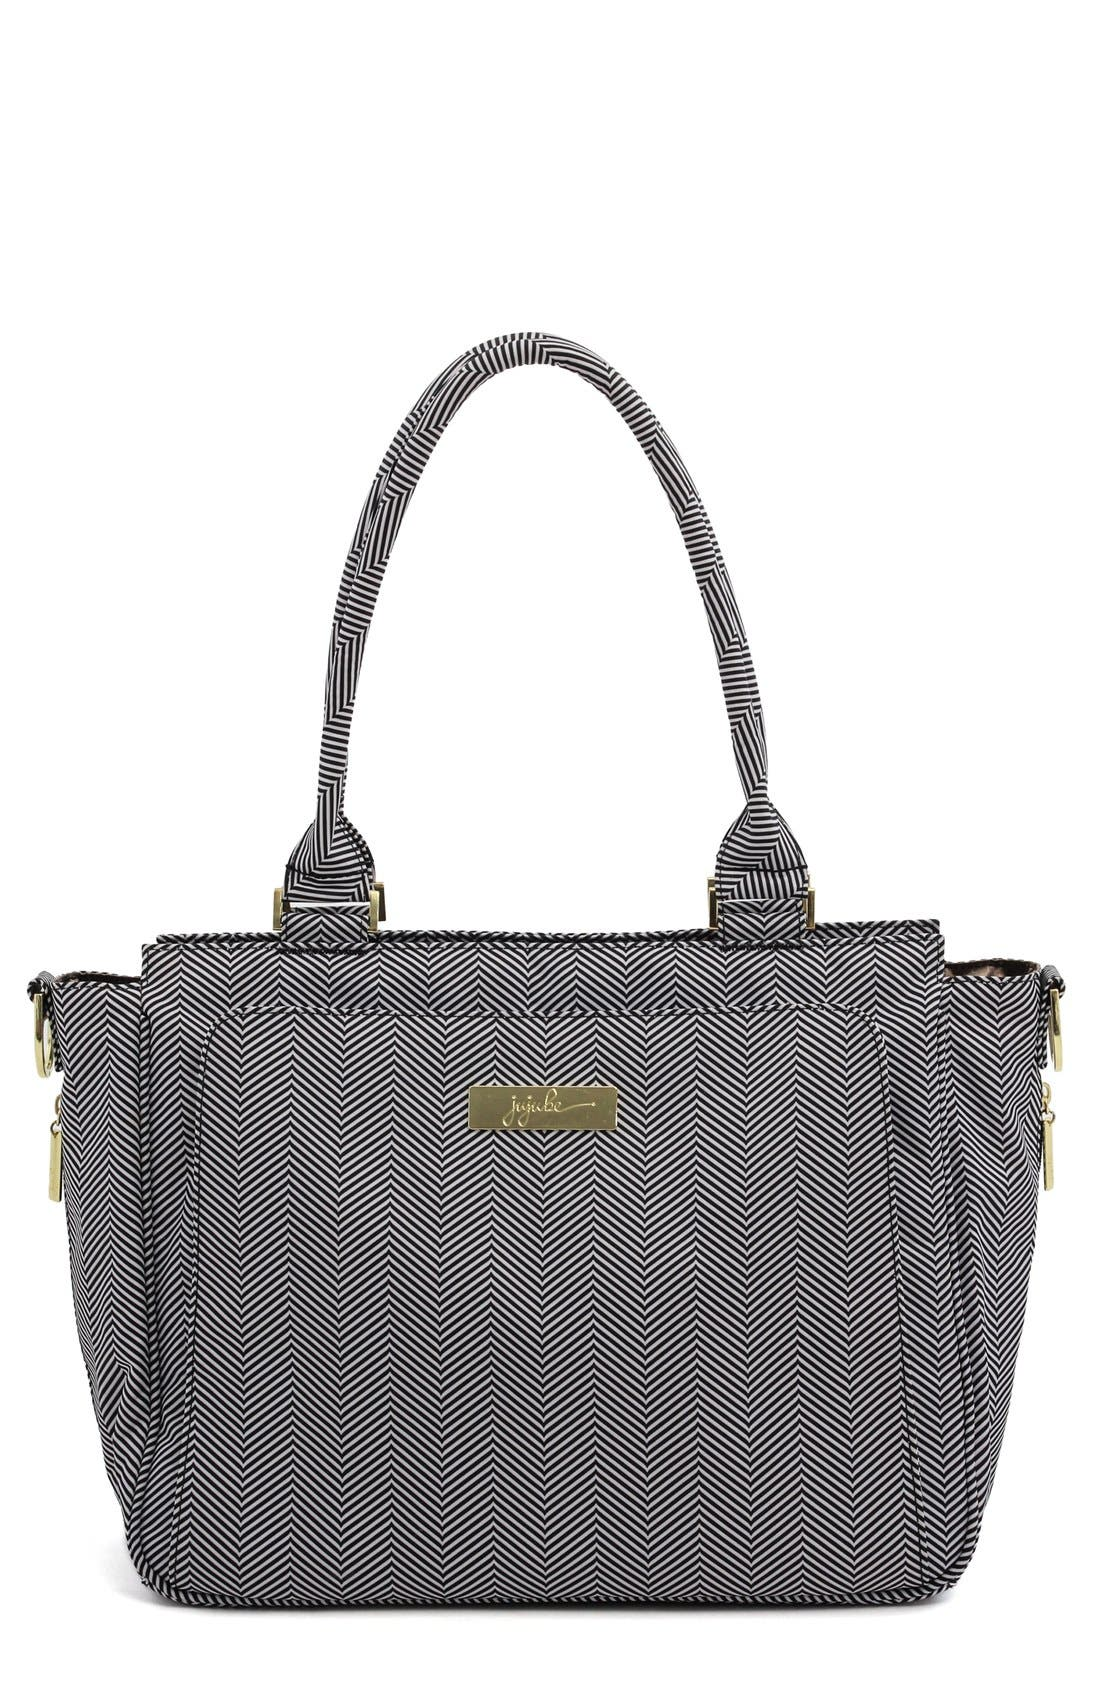 'Be Classy' Messenger Diaper Bag,                             Main thumbnail 1, color,                             The Queen Of The Nile